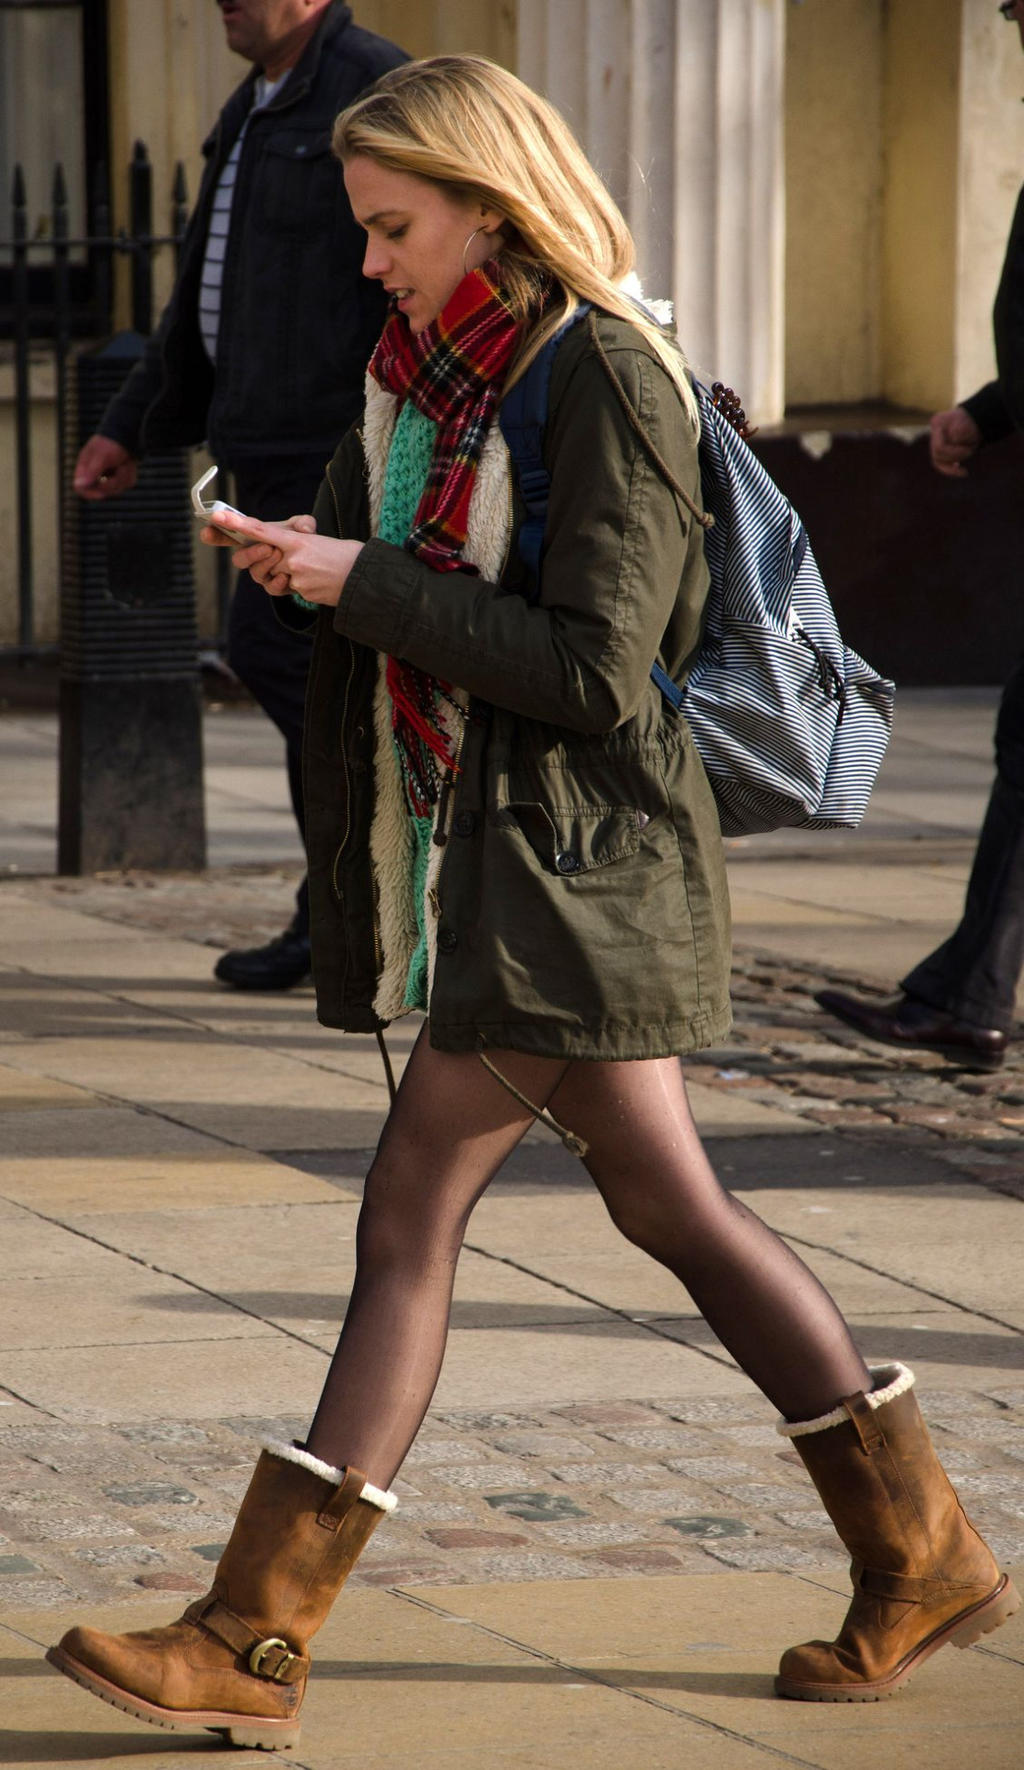 Real candid pantyhose blog, teen college girl porn